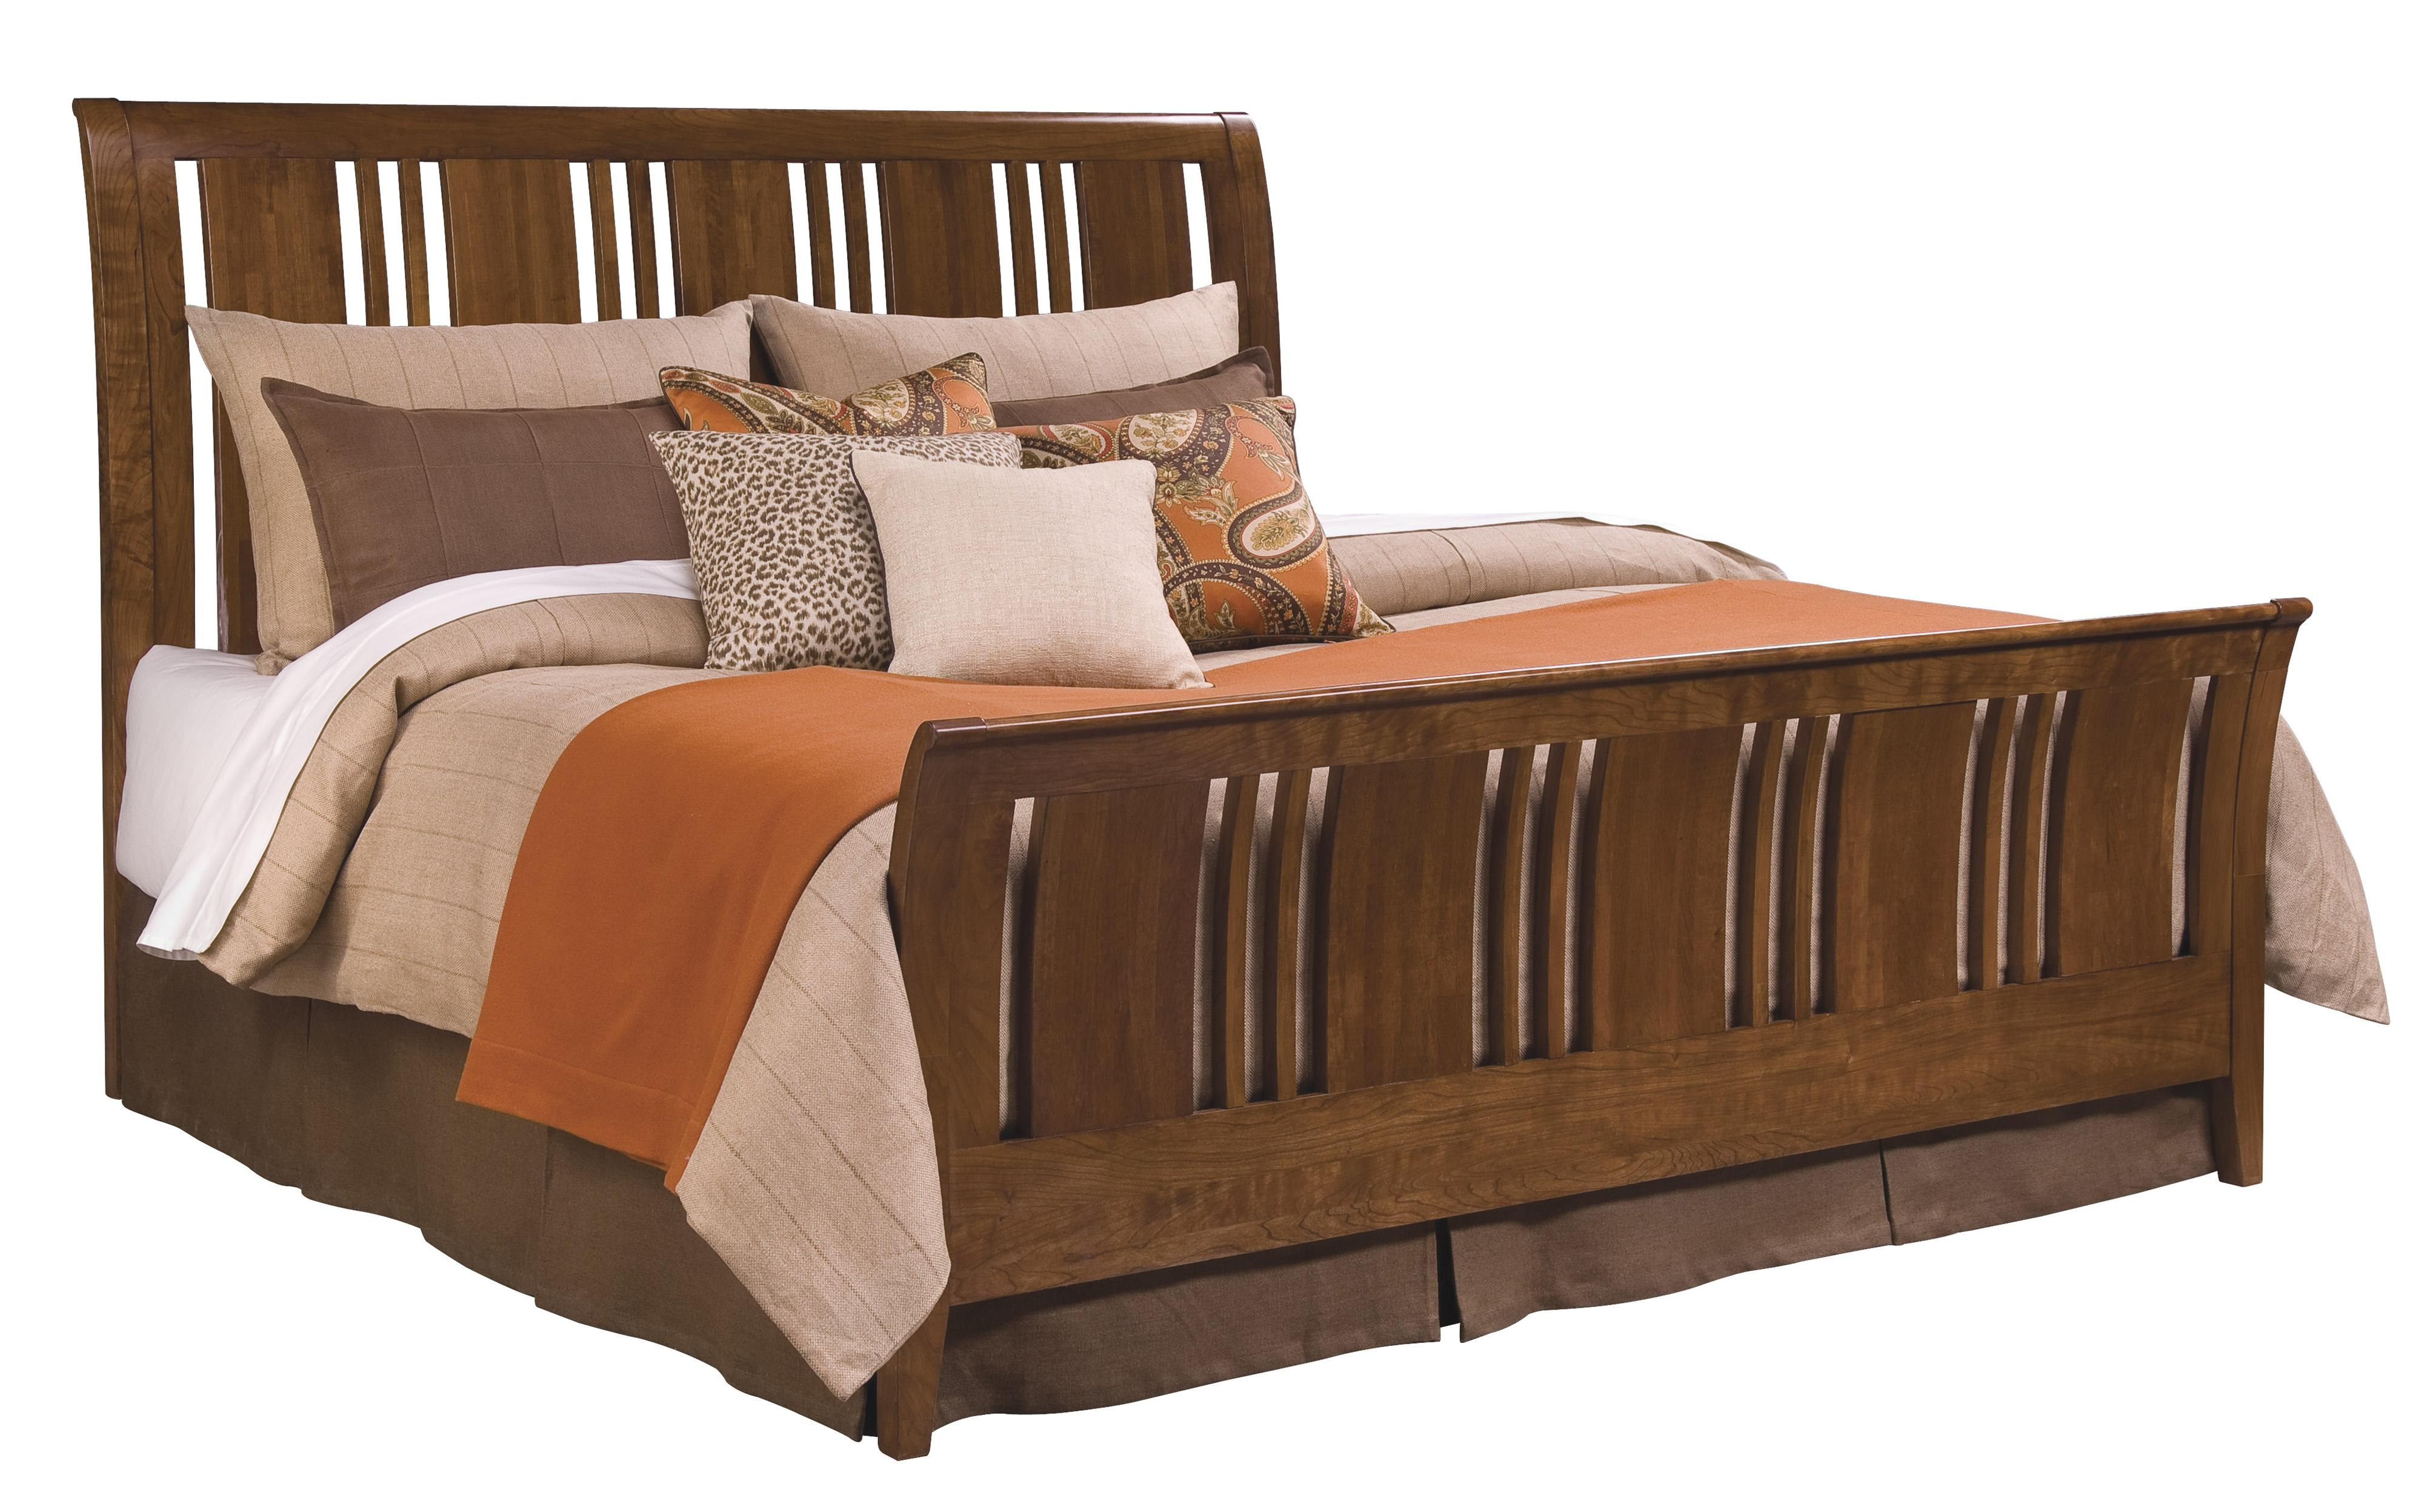 Kincaid Furniture Cherry Park King Slat Sleigh Bed Olinde 39 S Furniture Sleigh Beds